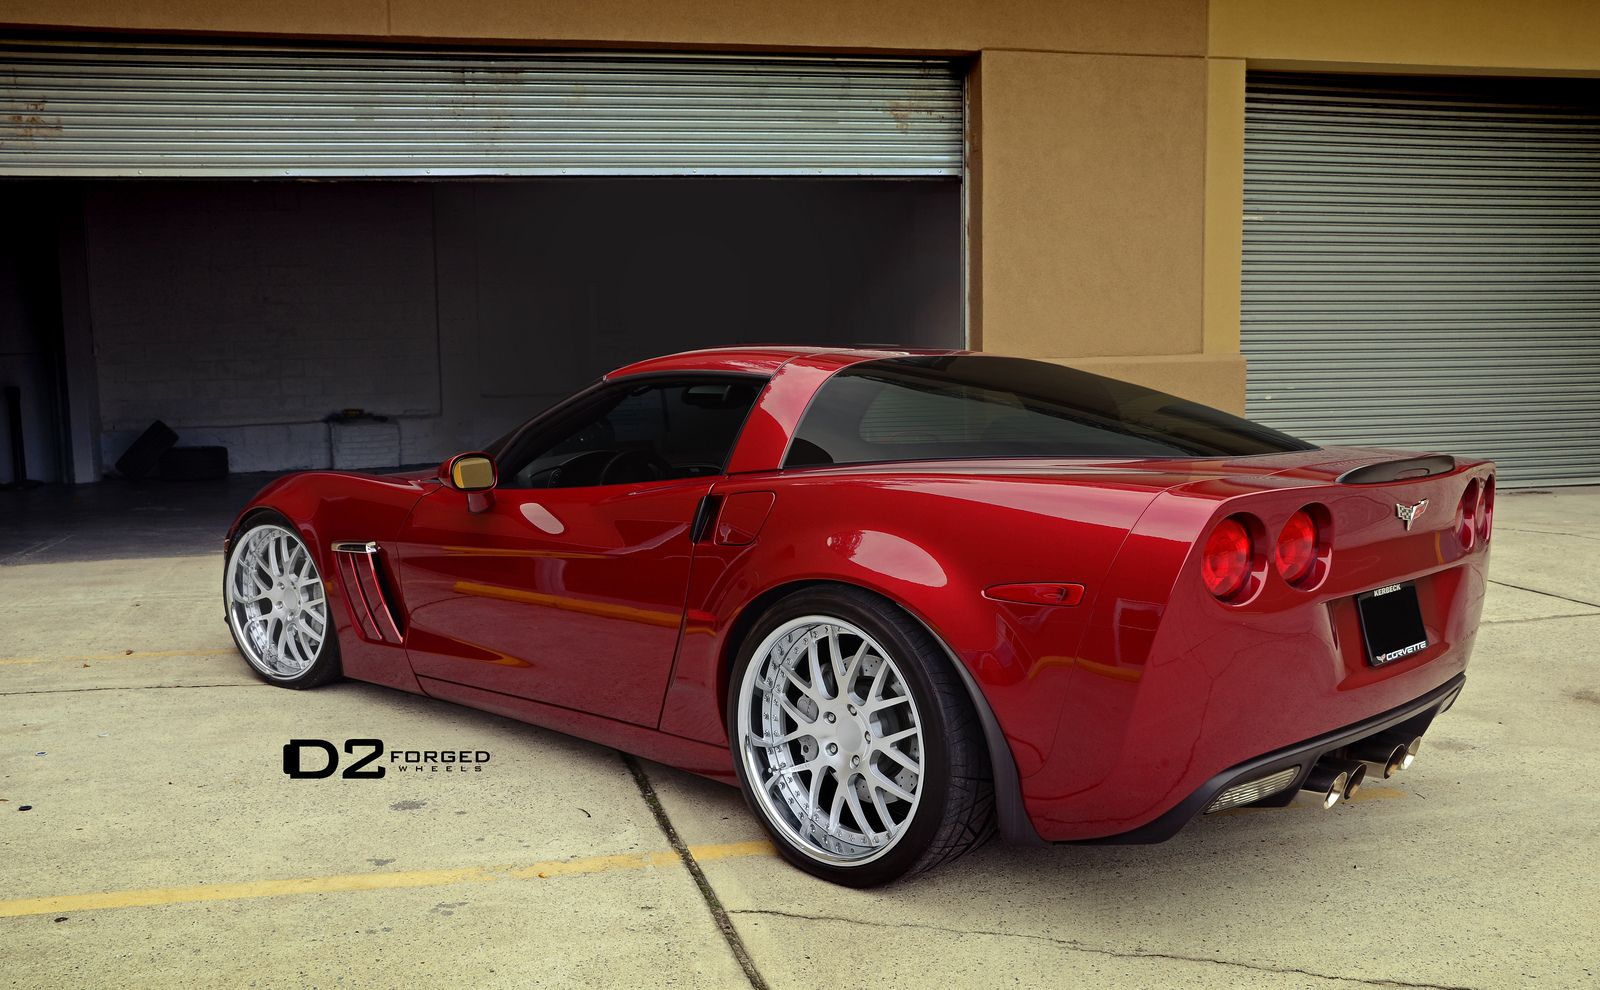 Gorgeous Burgundy Red Corvette Z06 On Our Fms01 Wheels Corvette Corvette Z06 Red Corvette